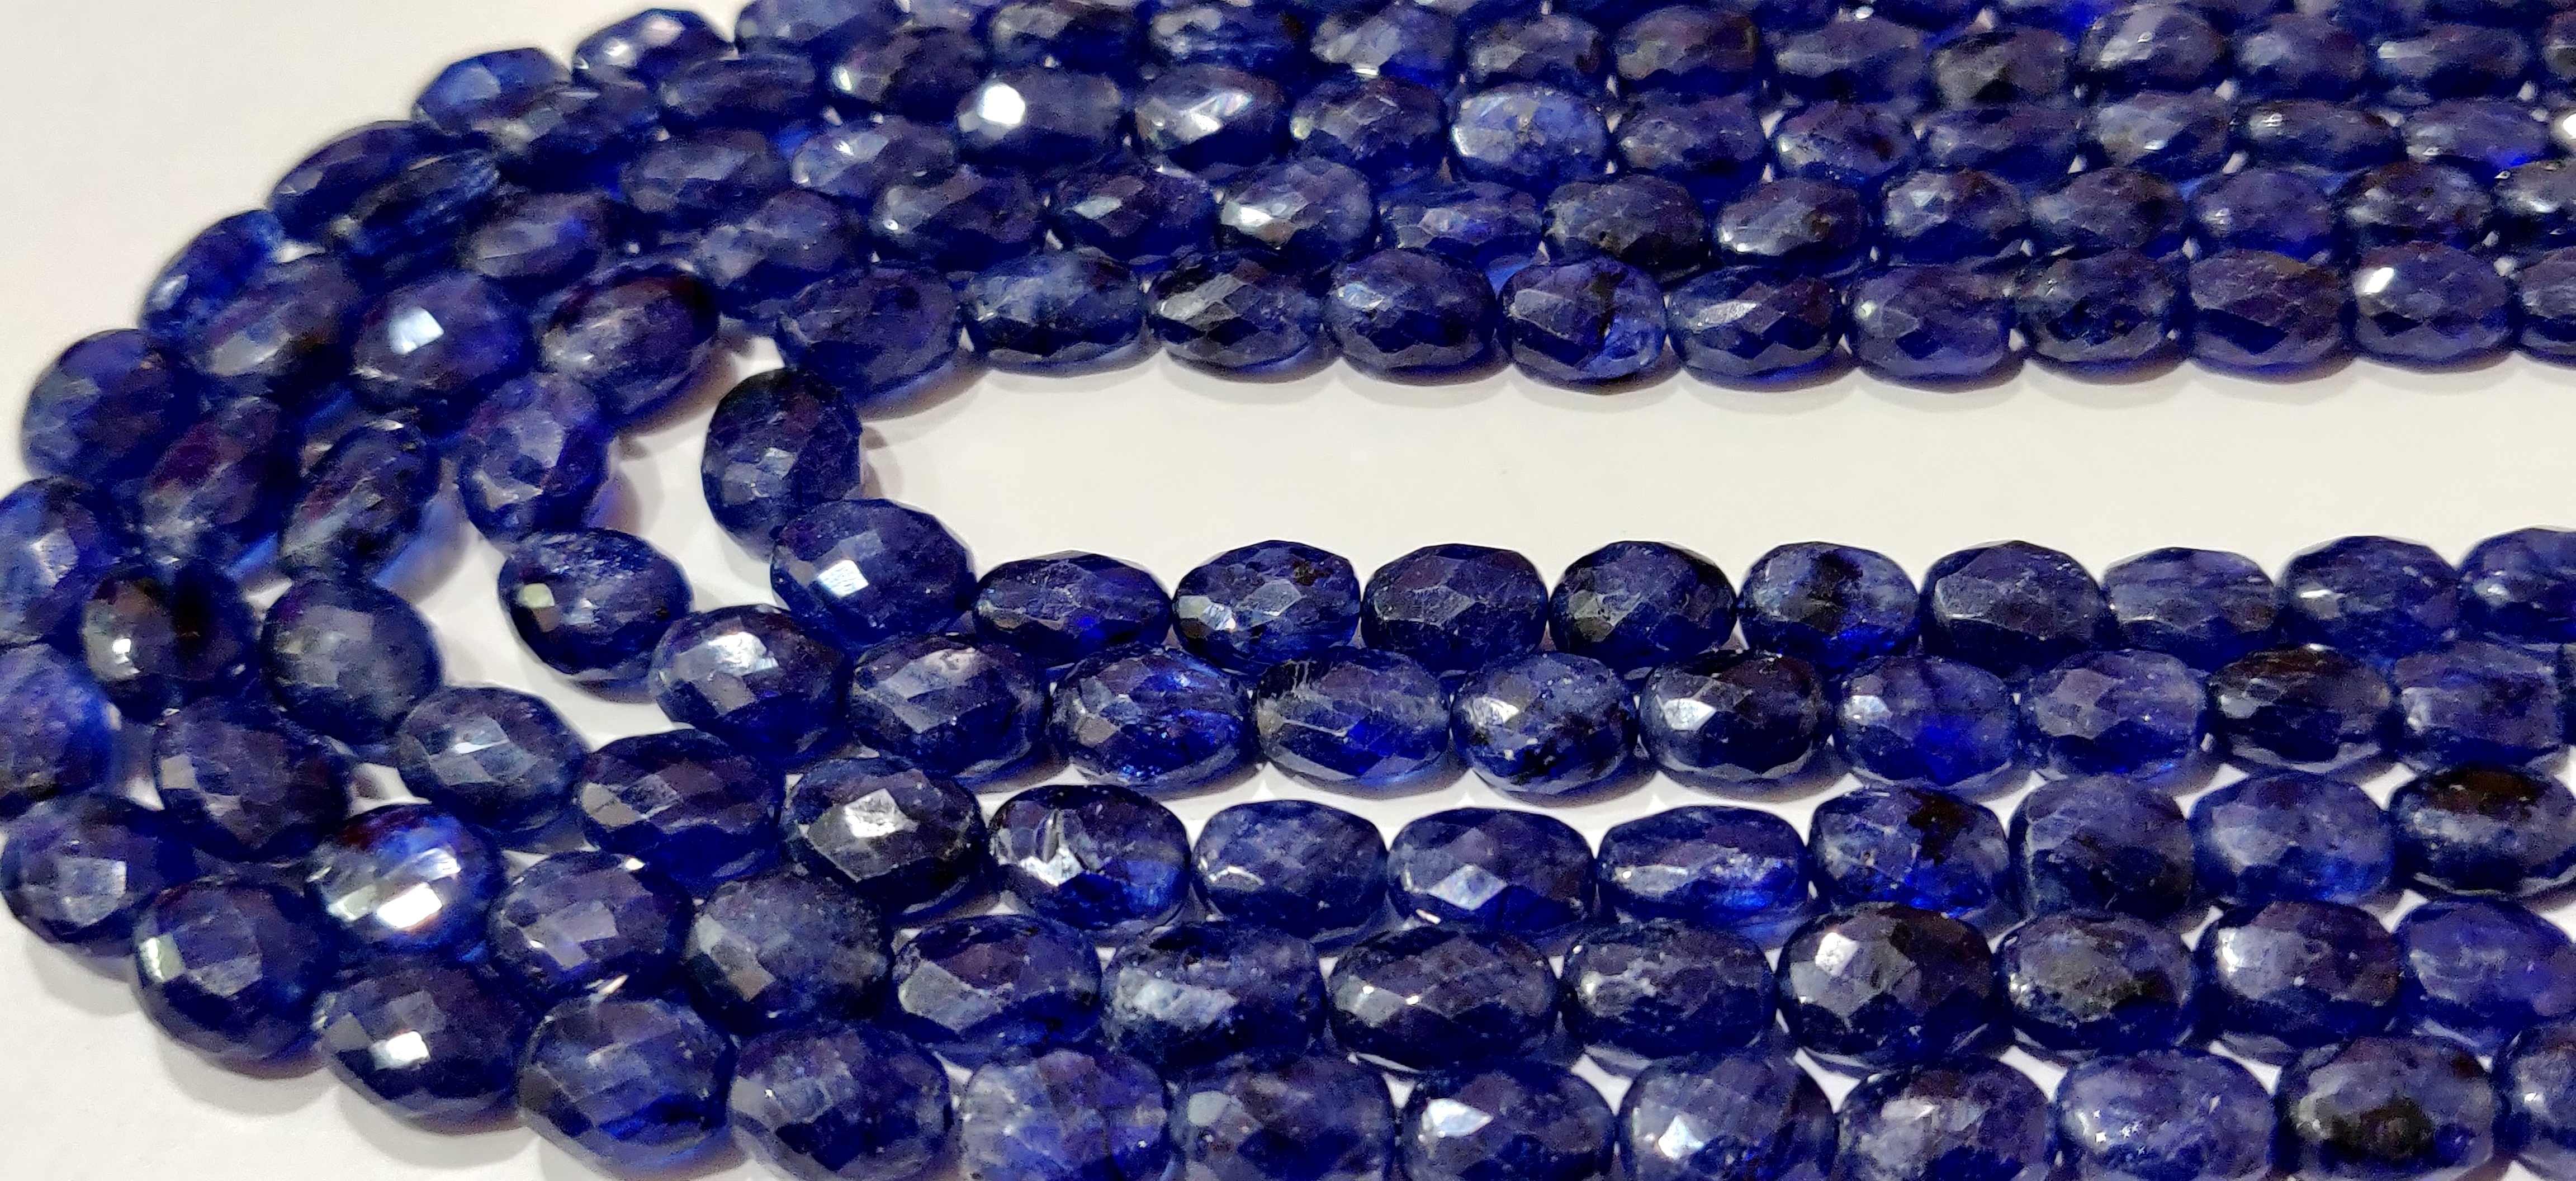 Natural Blue Sapphire Oval Shape Briolette Faceted 5x7mm to 8X11mm Size Beaded 18 inches long Necklace Top Quality Precious Gemstone